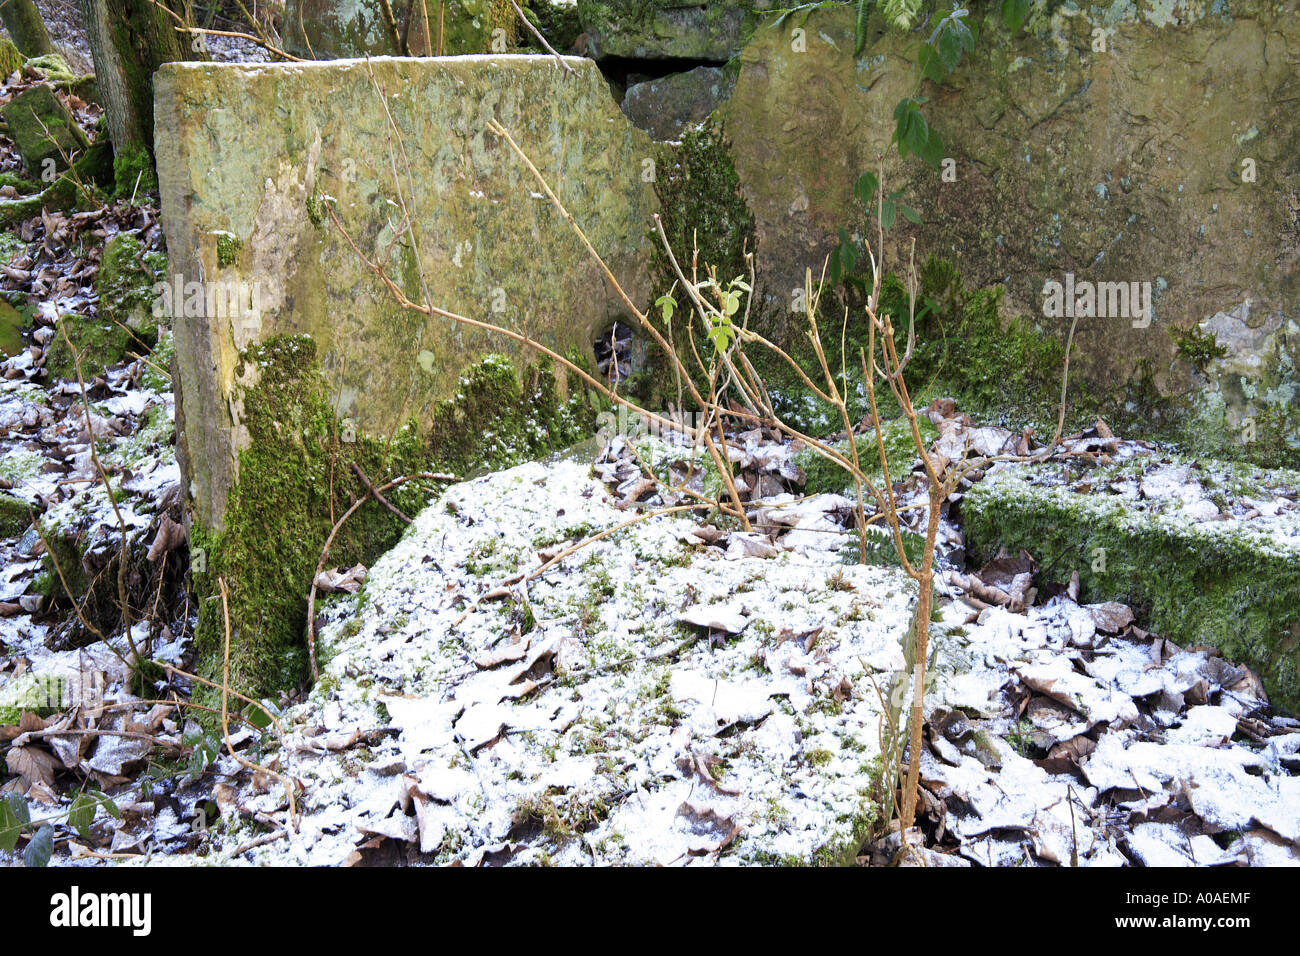 The remains of stone becks for scouring fluids for bleaching cotton at Washwheel Mill in the Cheesden Valley Heywood Stock Photo